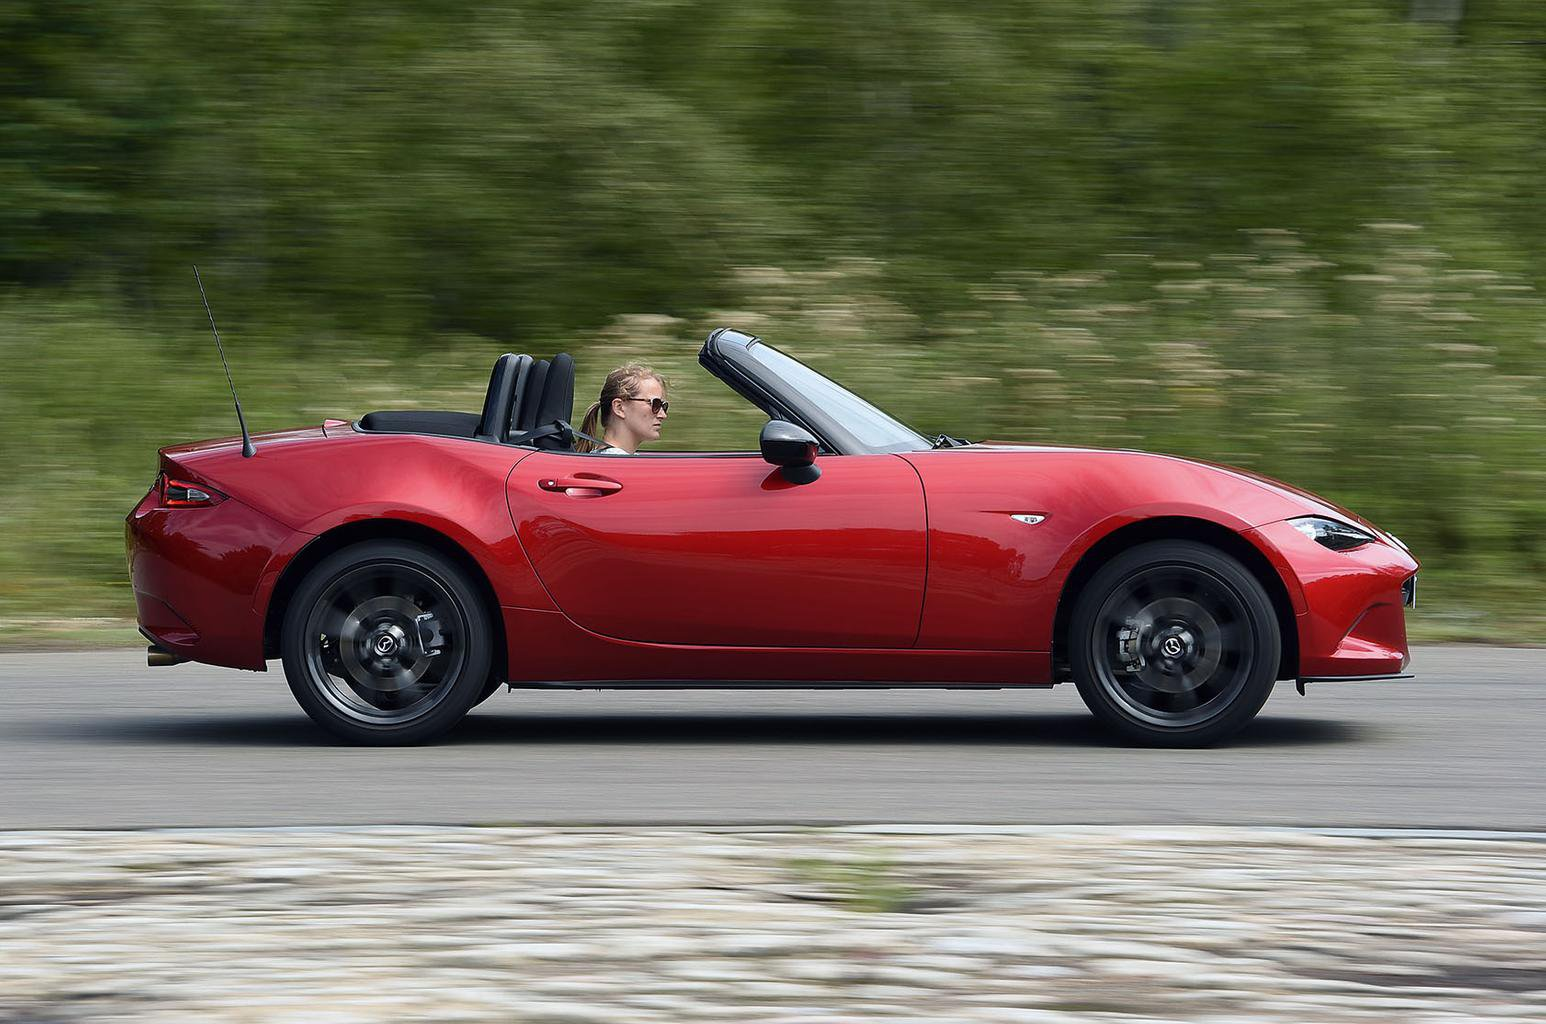 Used test: Mazda MX-5 vs Toyota GT86